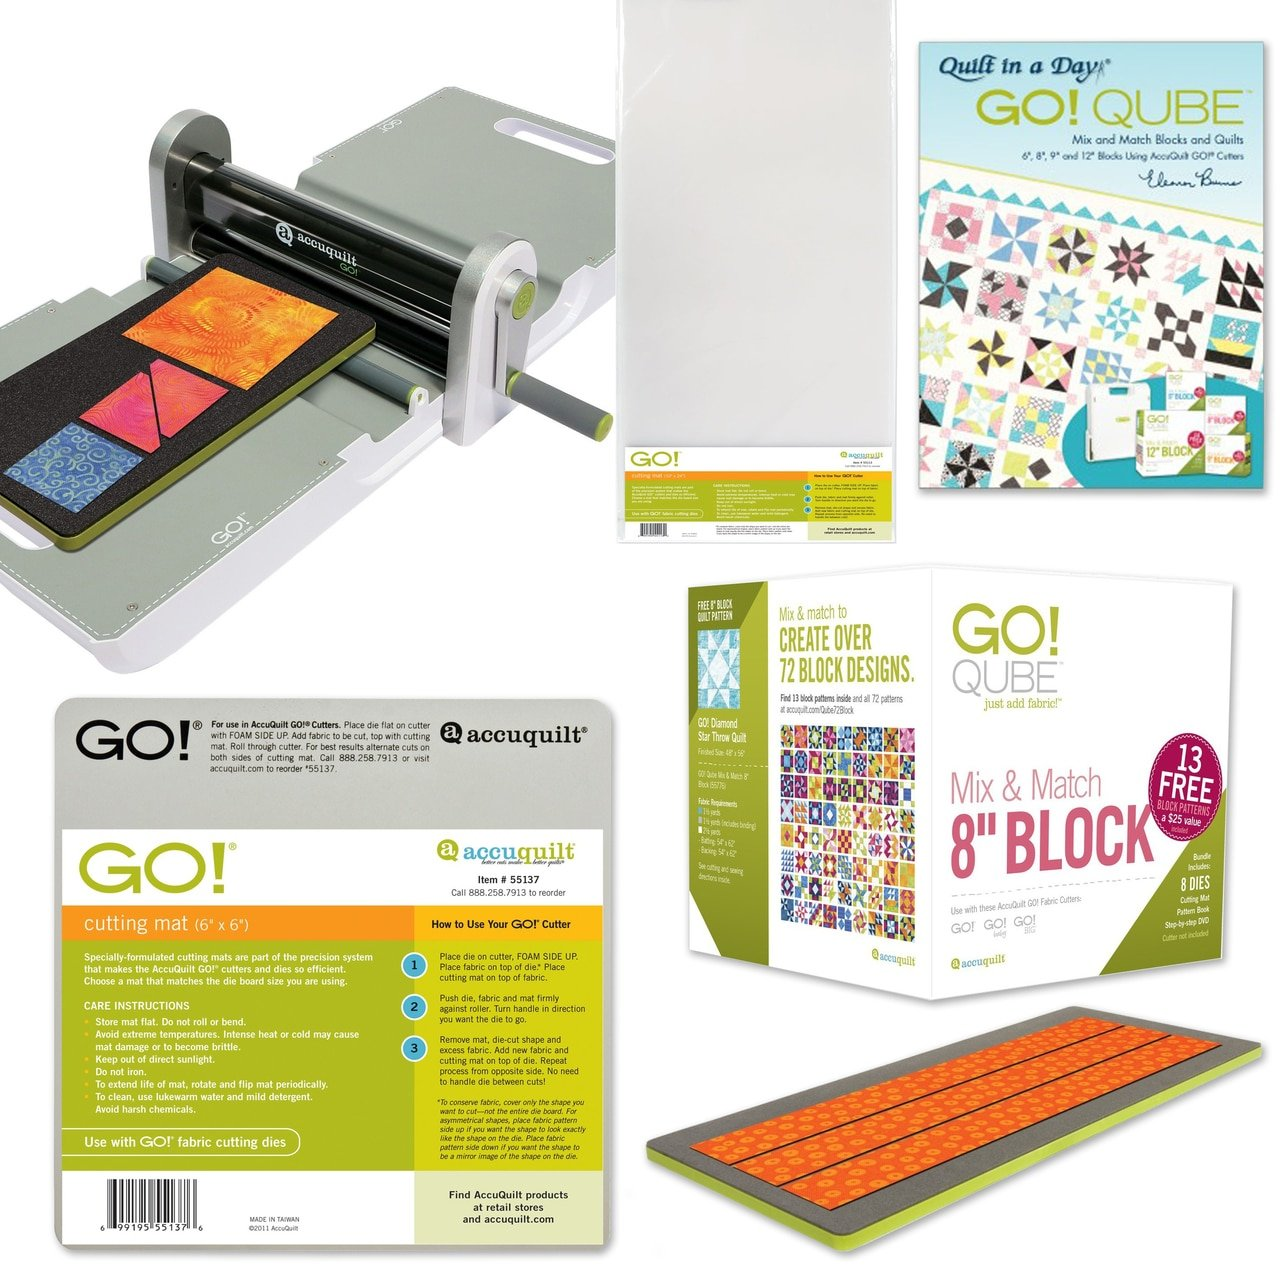 Ready. Set. GO! Ultimate Fabric Cutting System